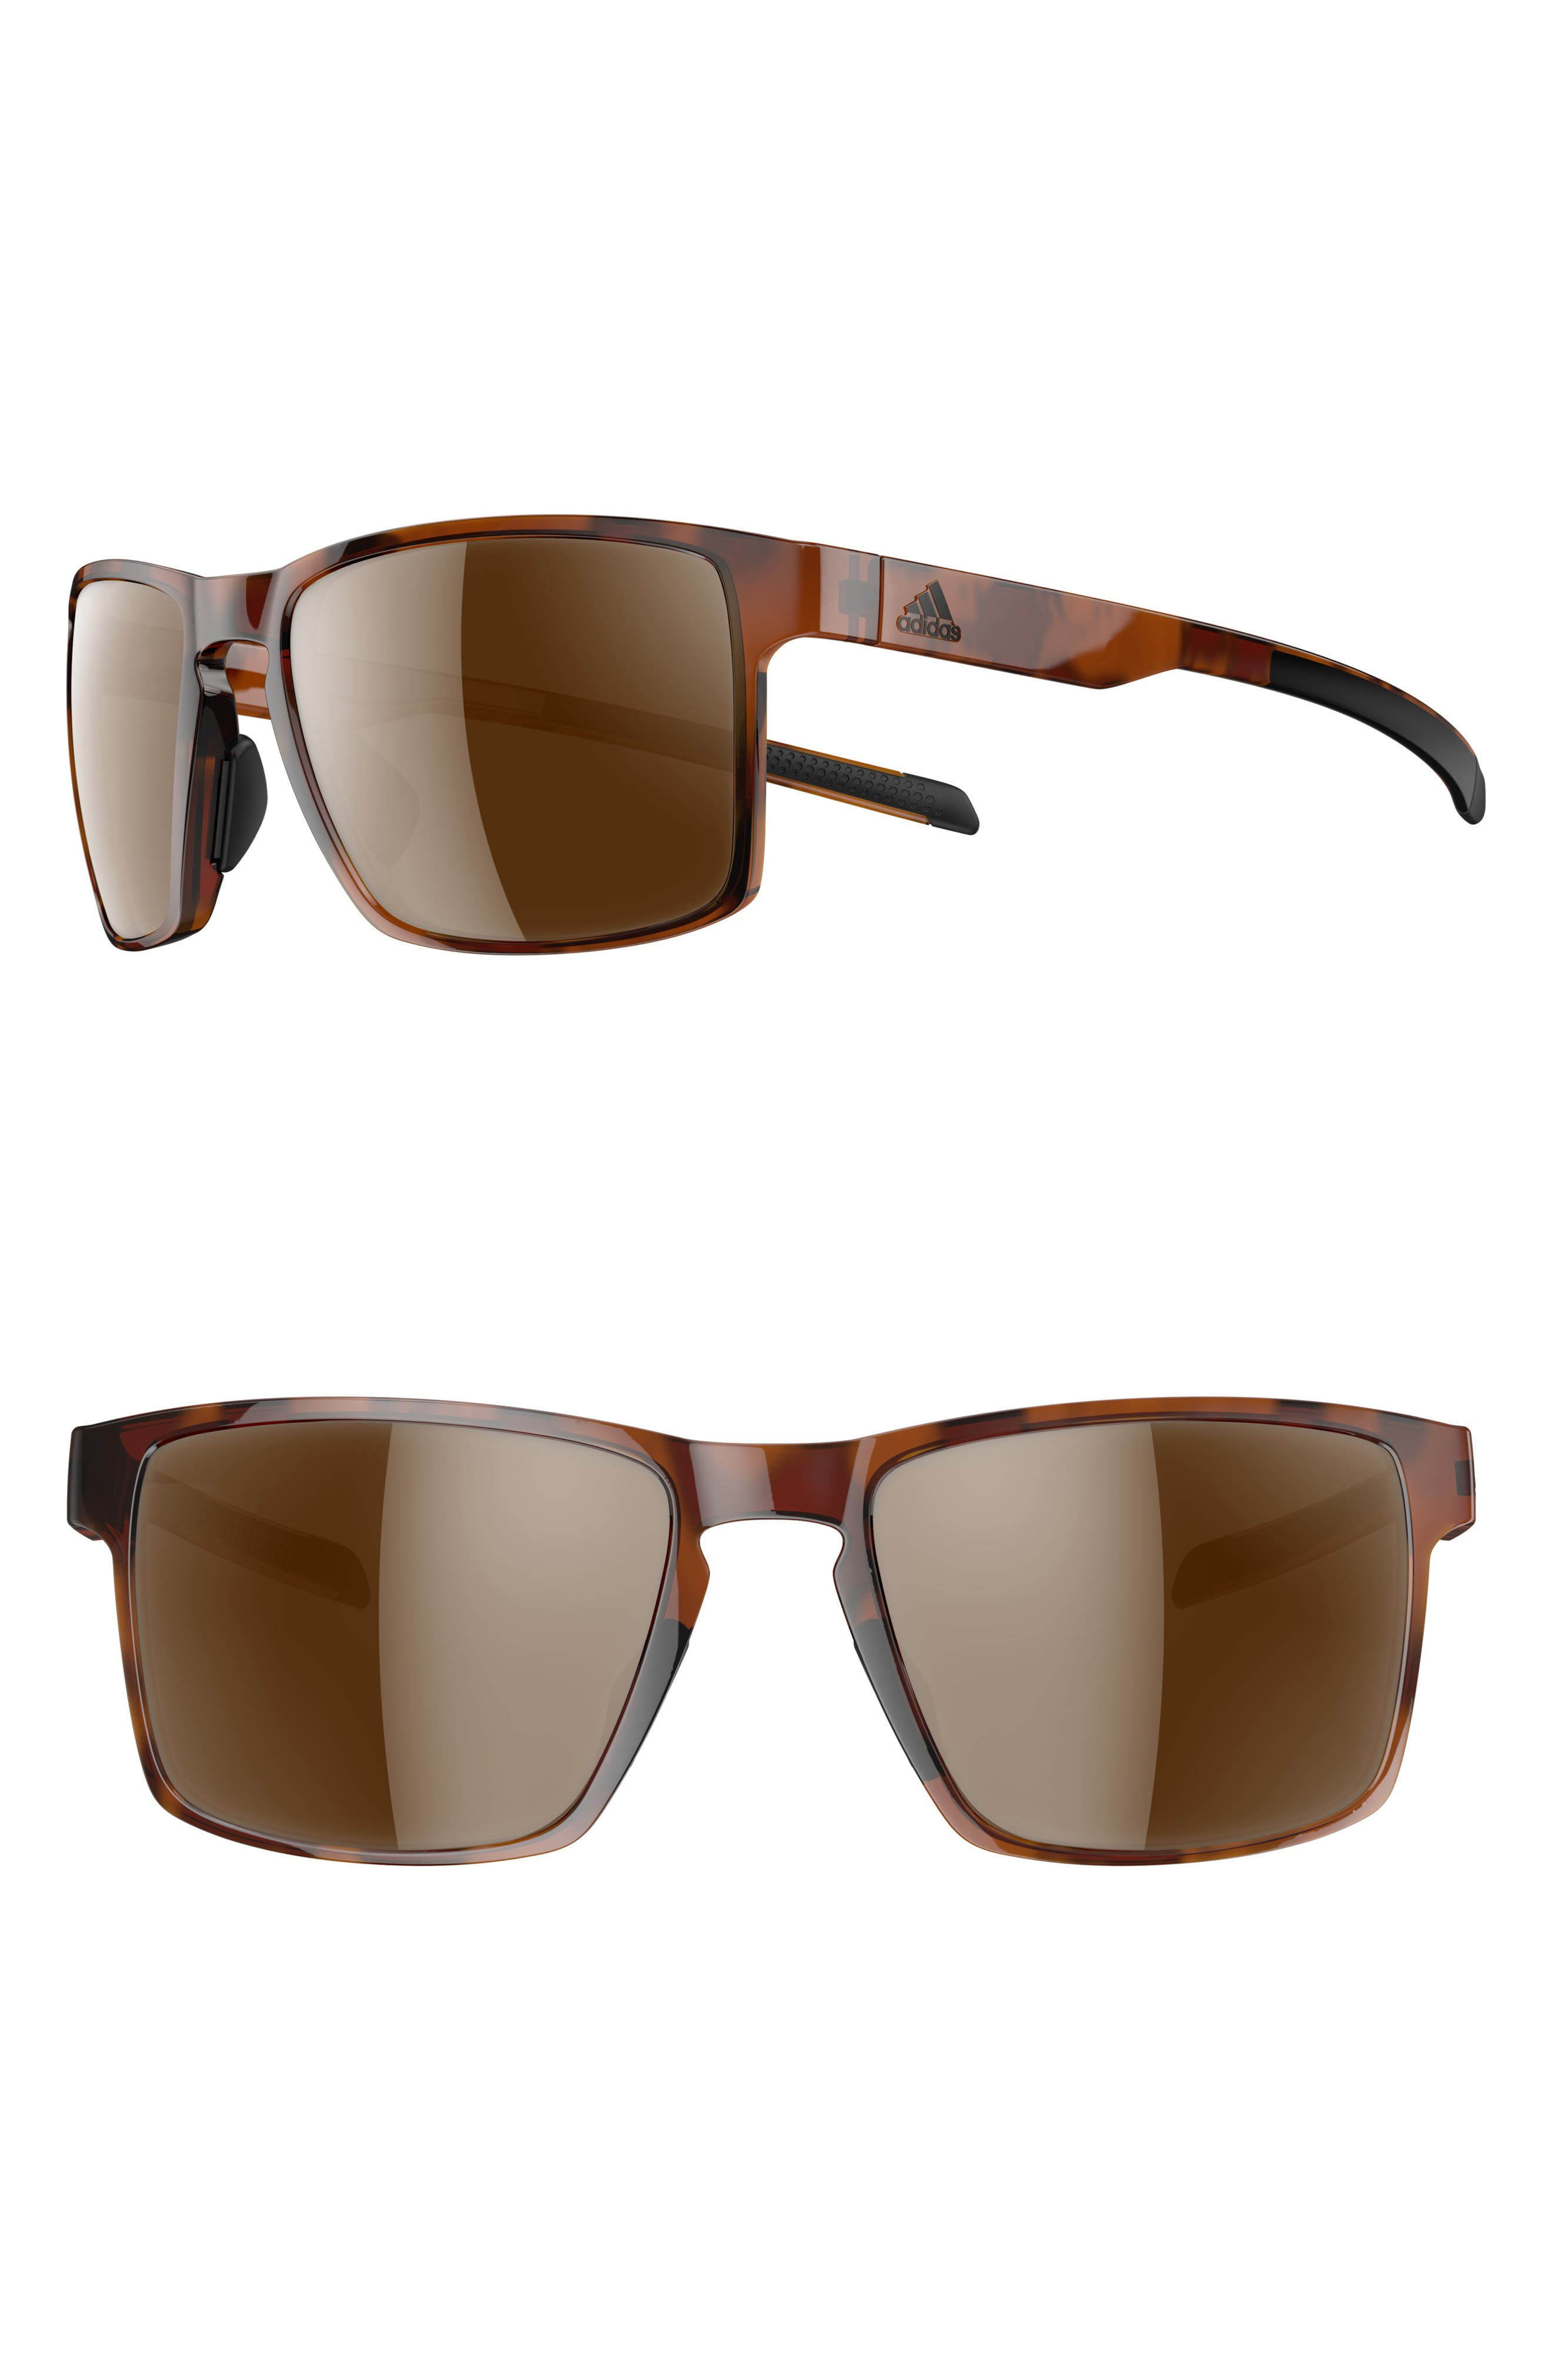 Wayfinder 56mm Sport Sunglasses,                         Main,                         color, BROWN HAVANA/ BROWN